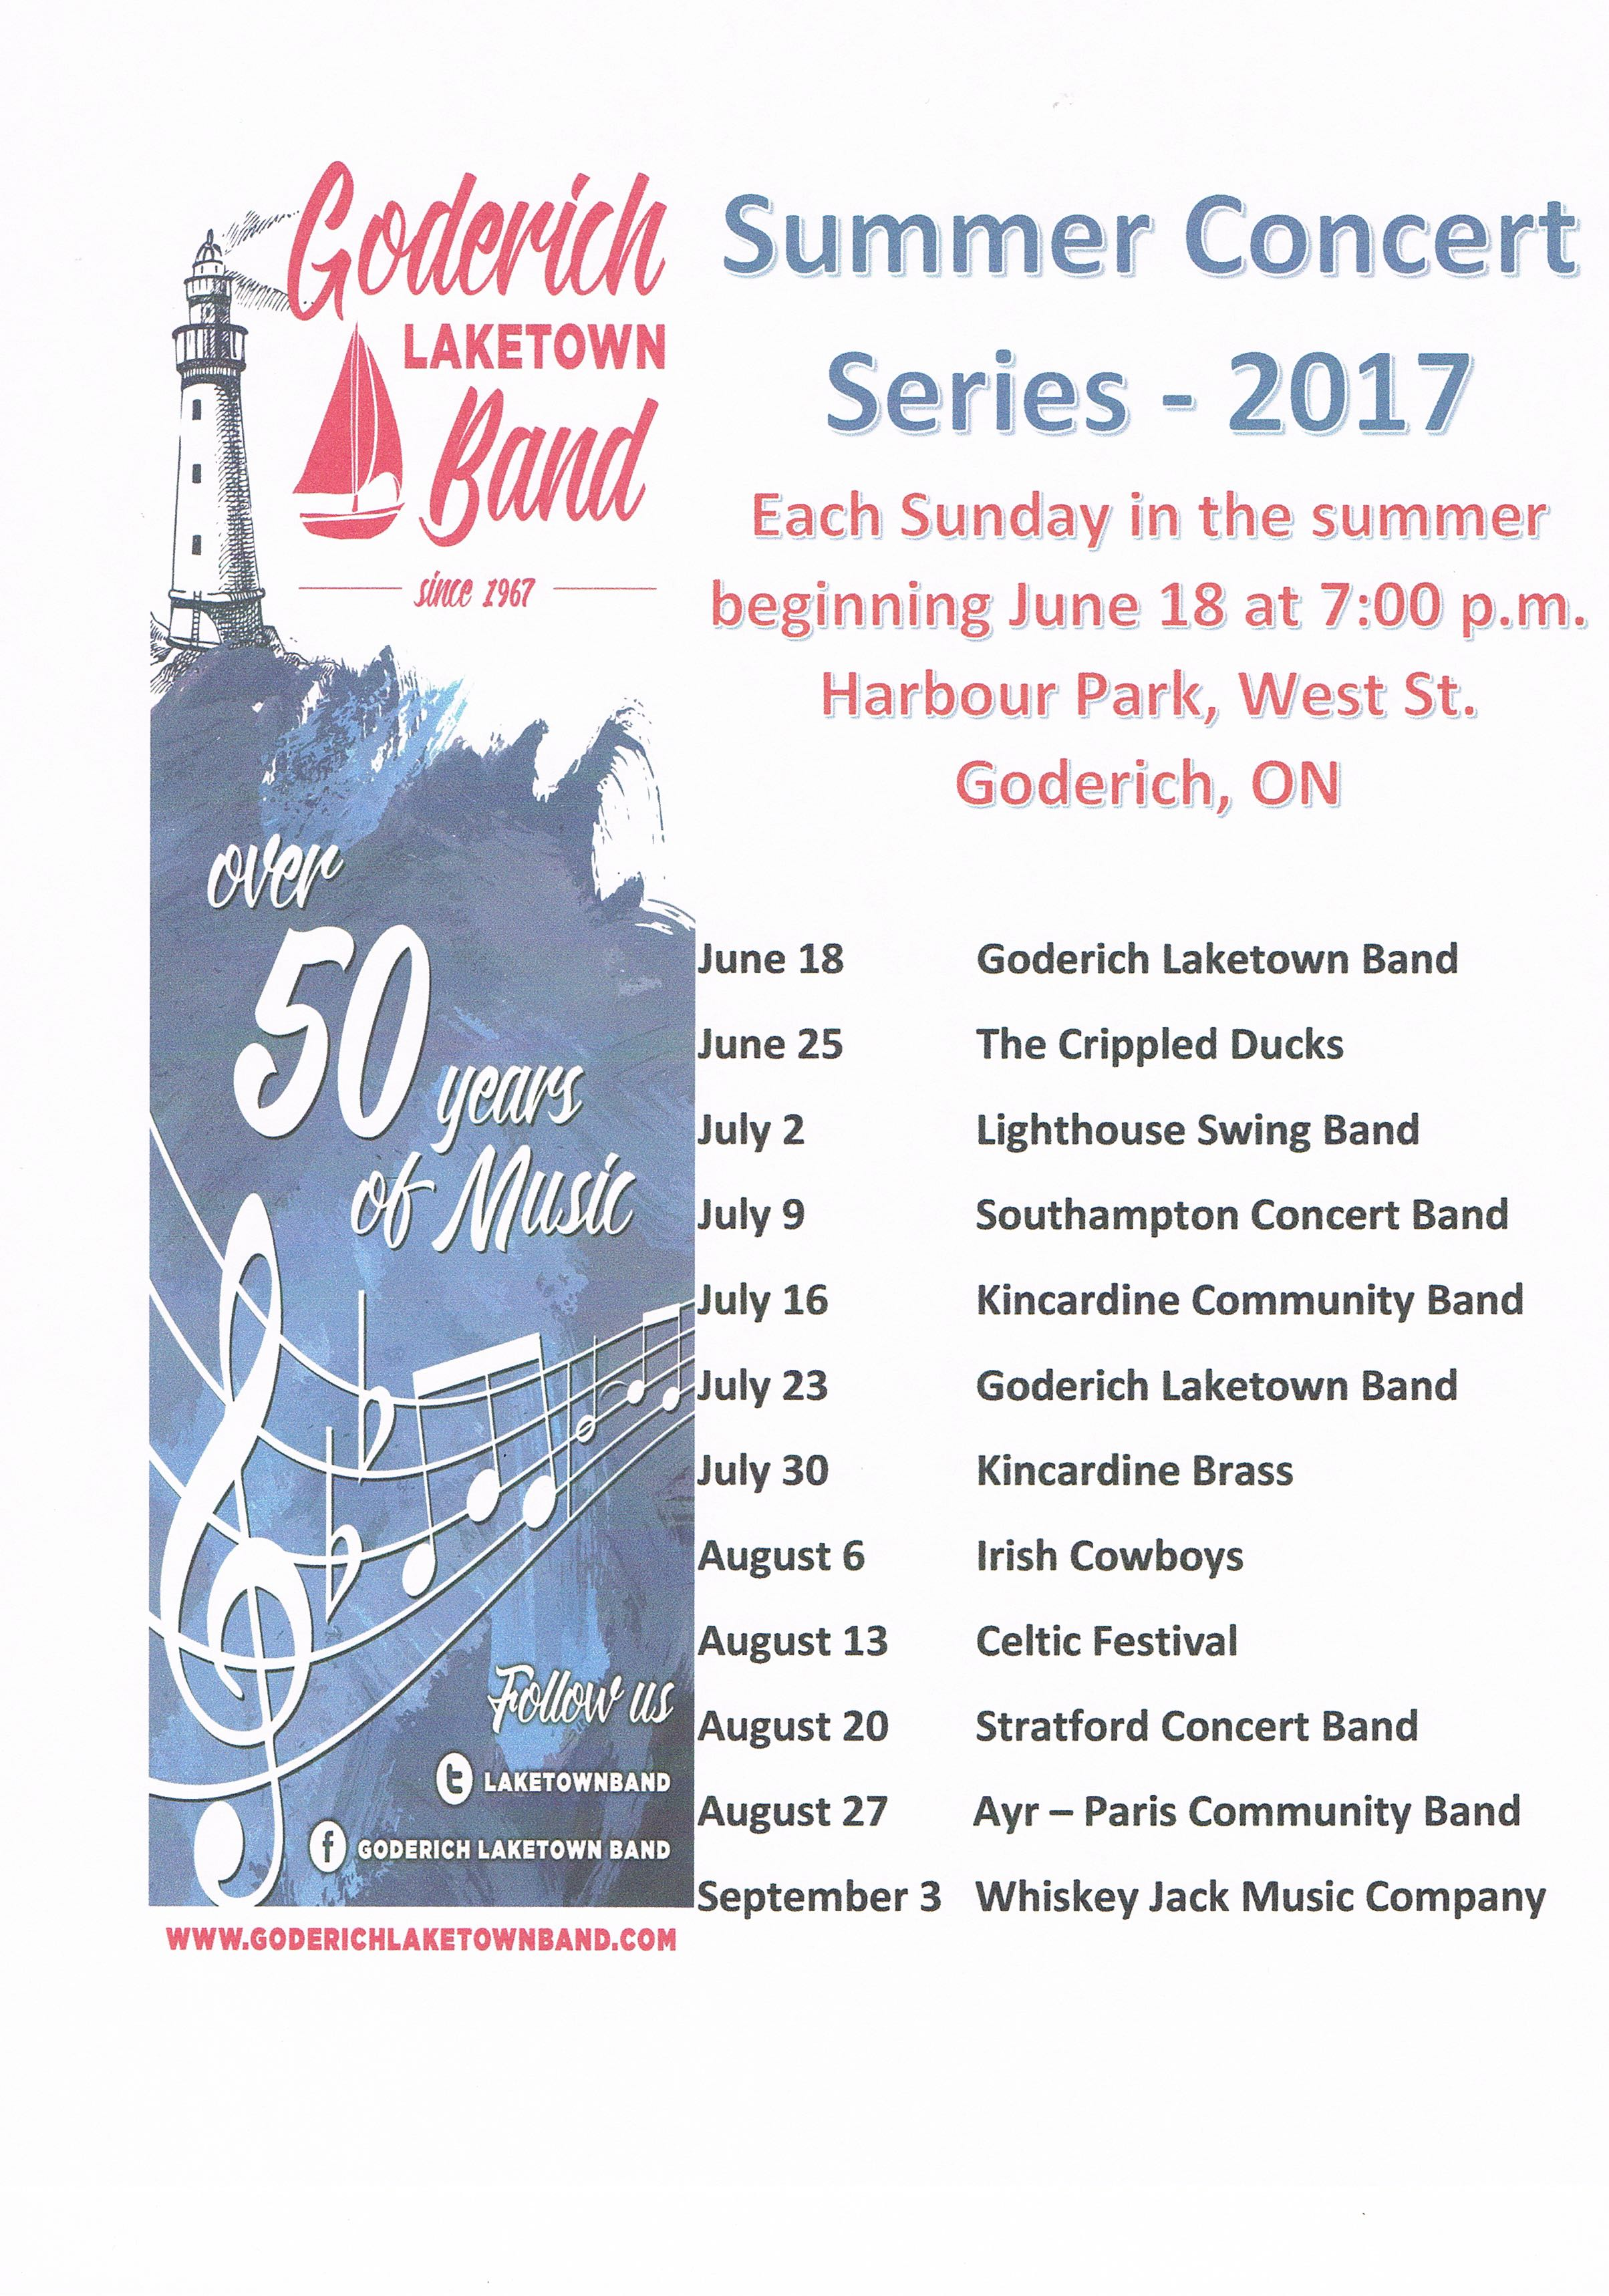 The Goderich Laketown Band is a proud supporter of music in Huron County. Each summer, we put on the Concert in the Park series of live performances by various musical groups at the Harbour Park sound stage. Below is this years summer concert schedule. See you there -